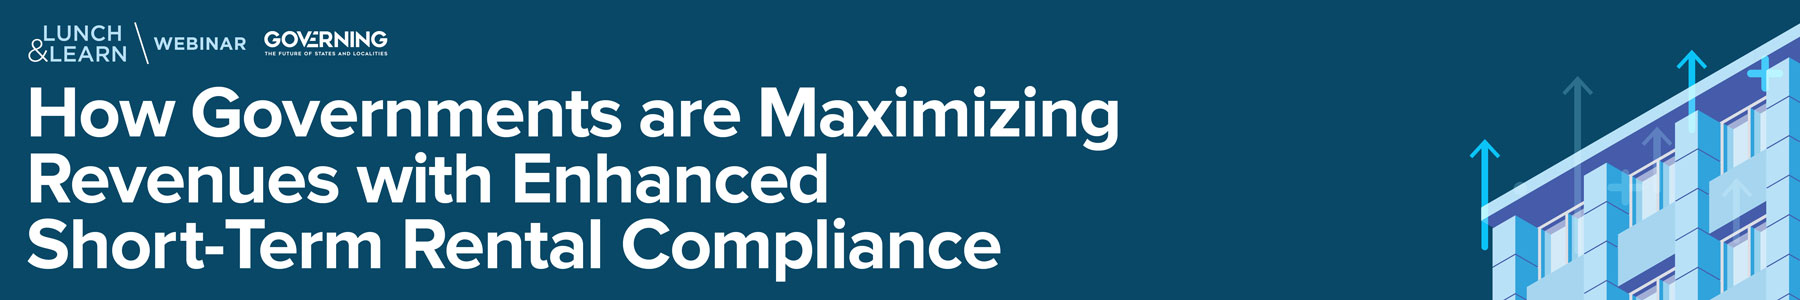 How Governments are Maximizing Revenues with Enhanced Short-Term Rental Compliance